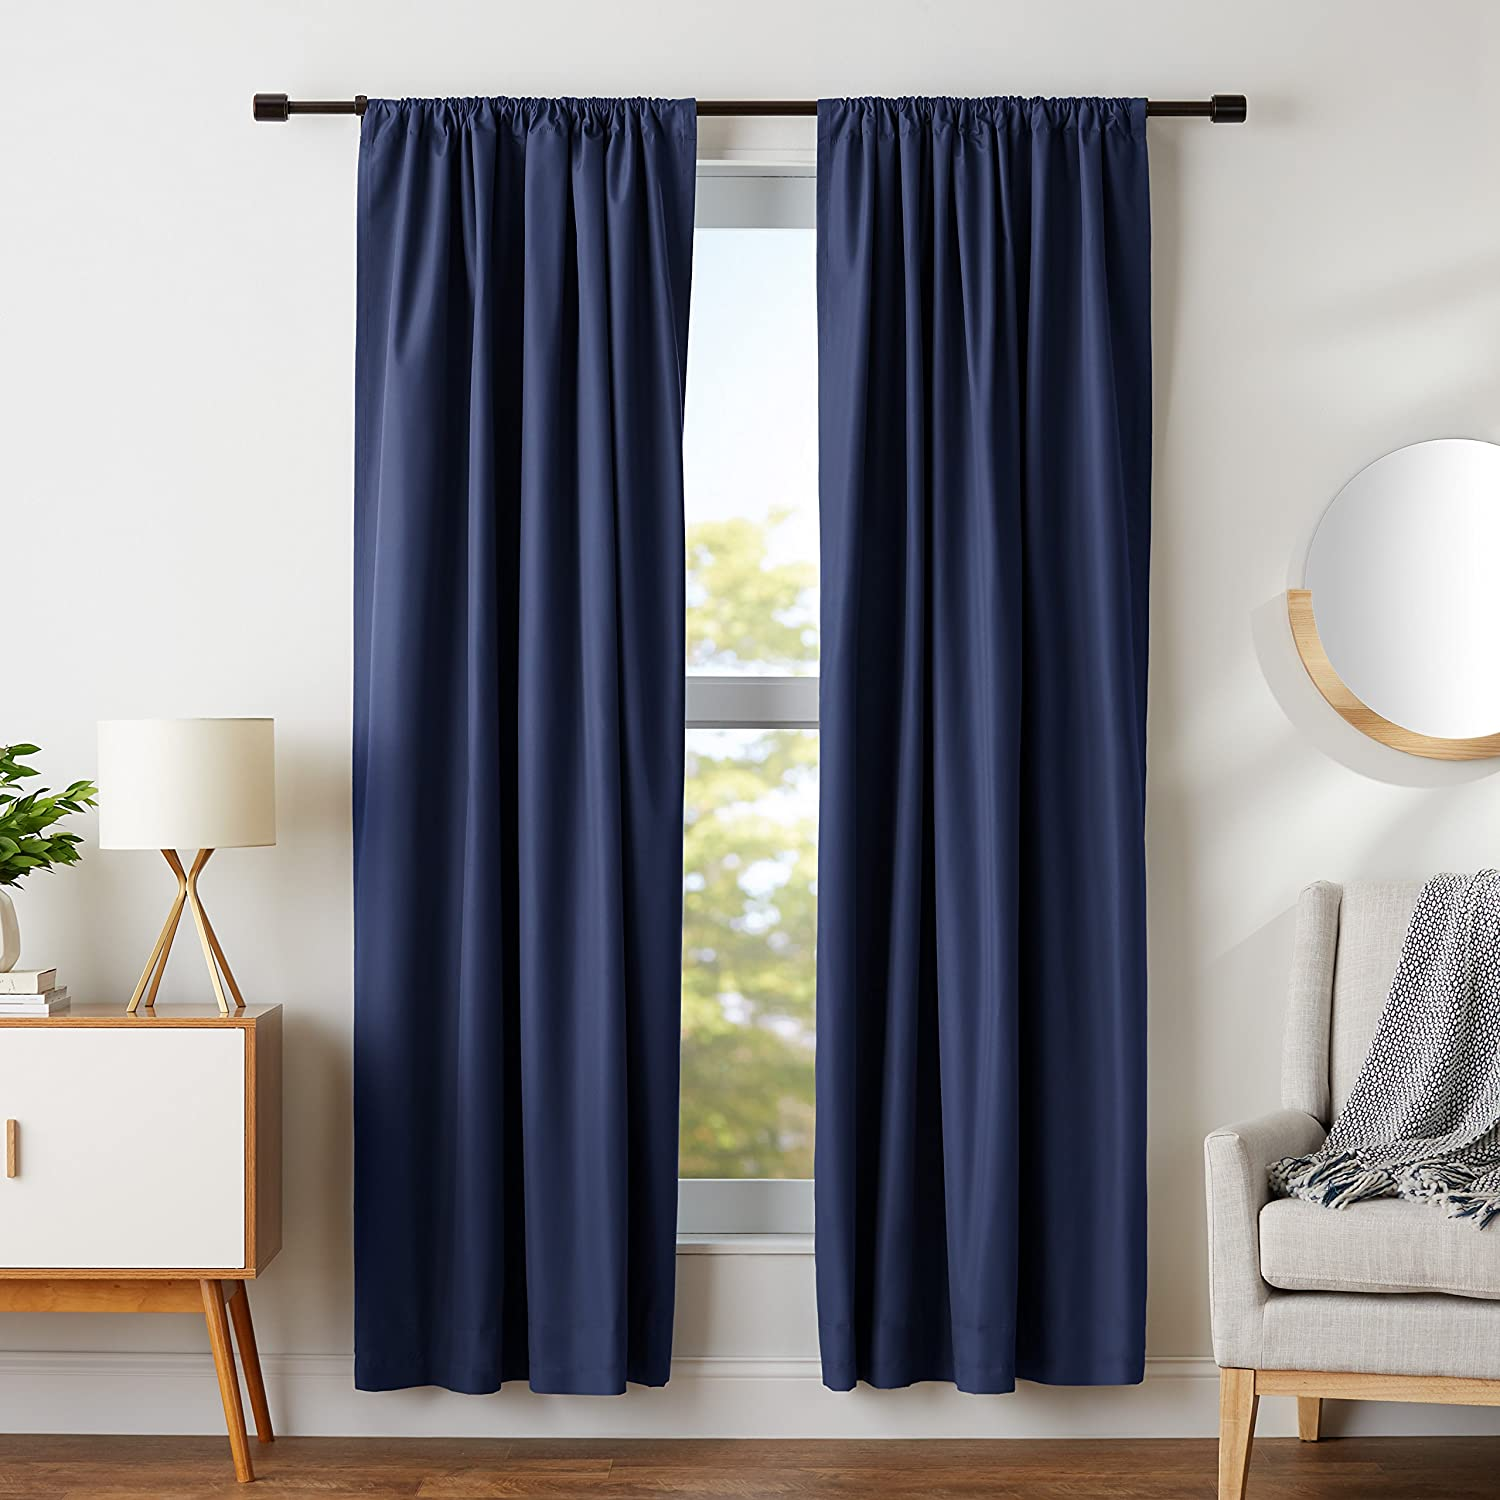 CDM product AmazonBasics Room Darkening Thermal Insulating Blackout Curtain Set with Tie Backs - 52 x 84 Inches, Navy (2 Panels) big image